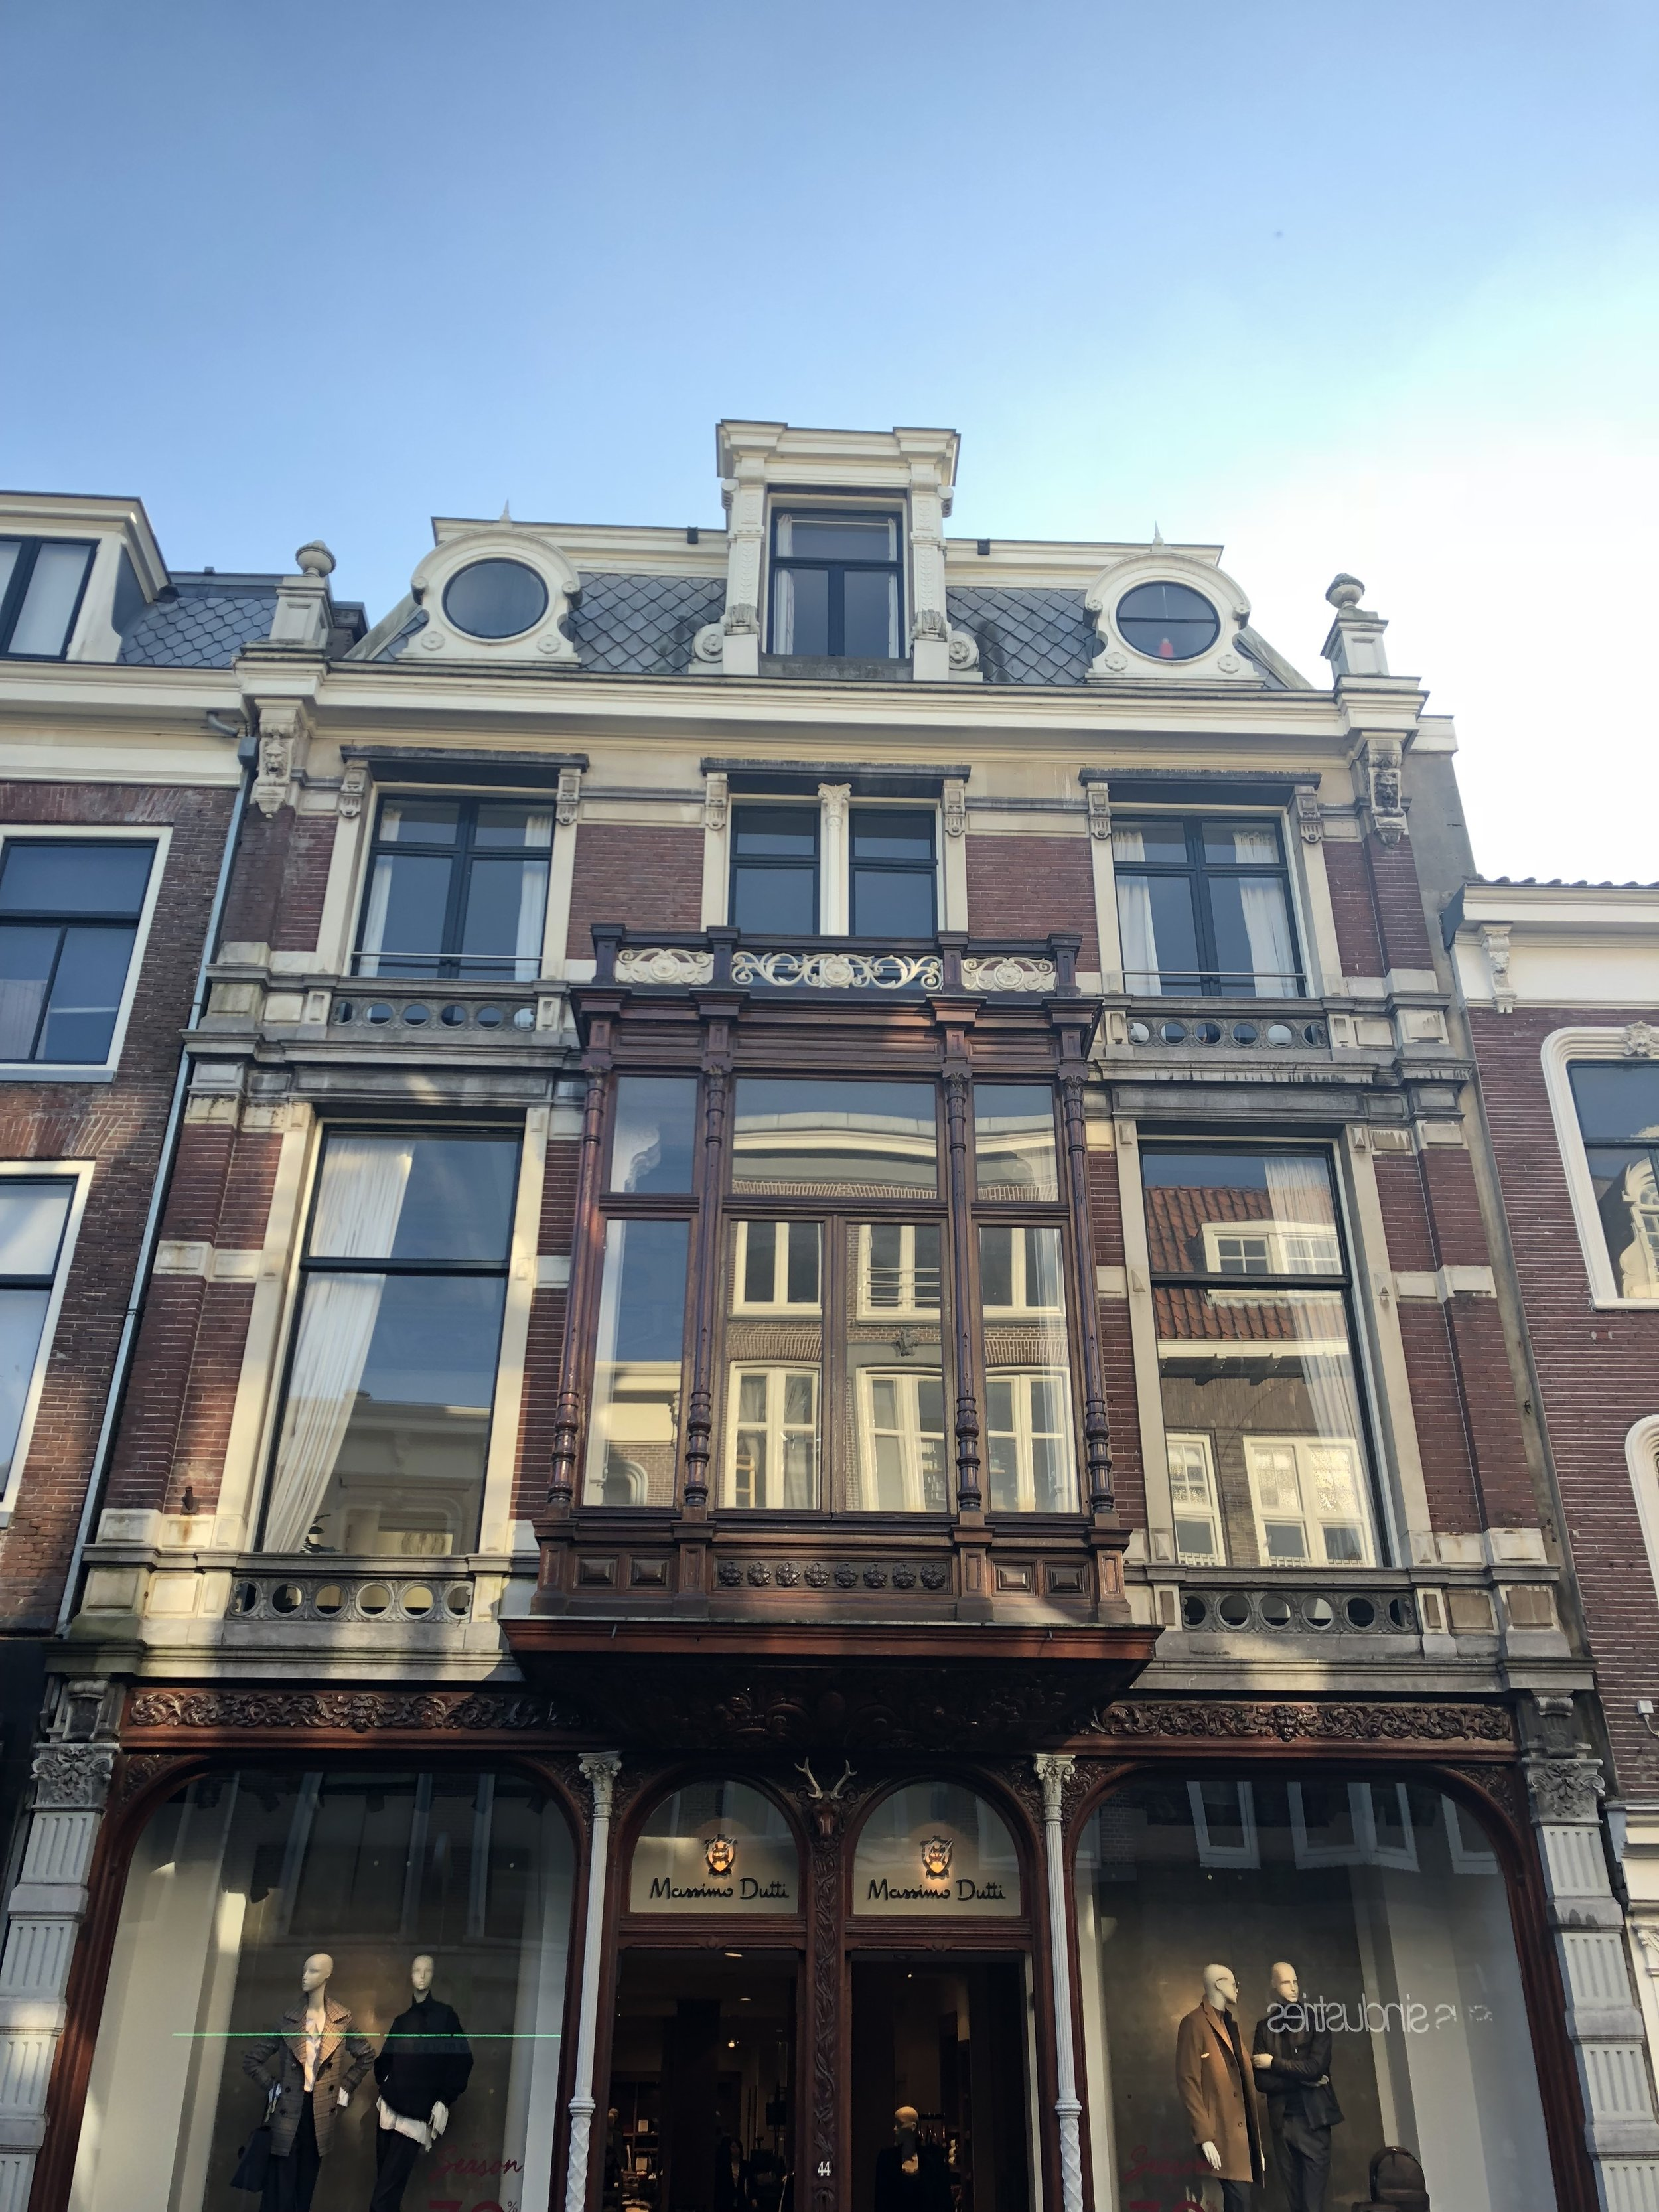 Utrecht Architecture - The Kissters